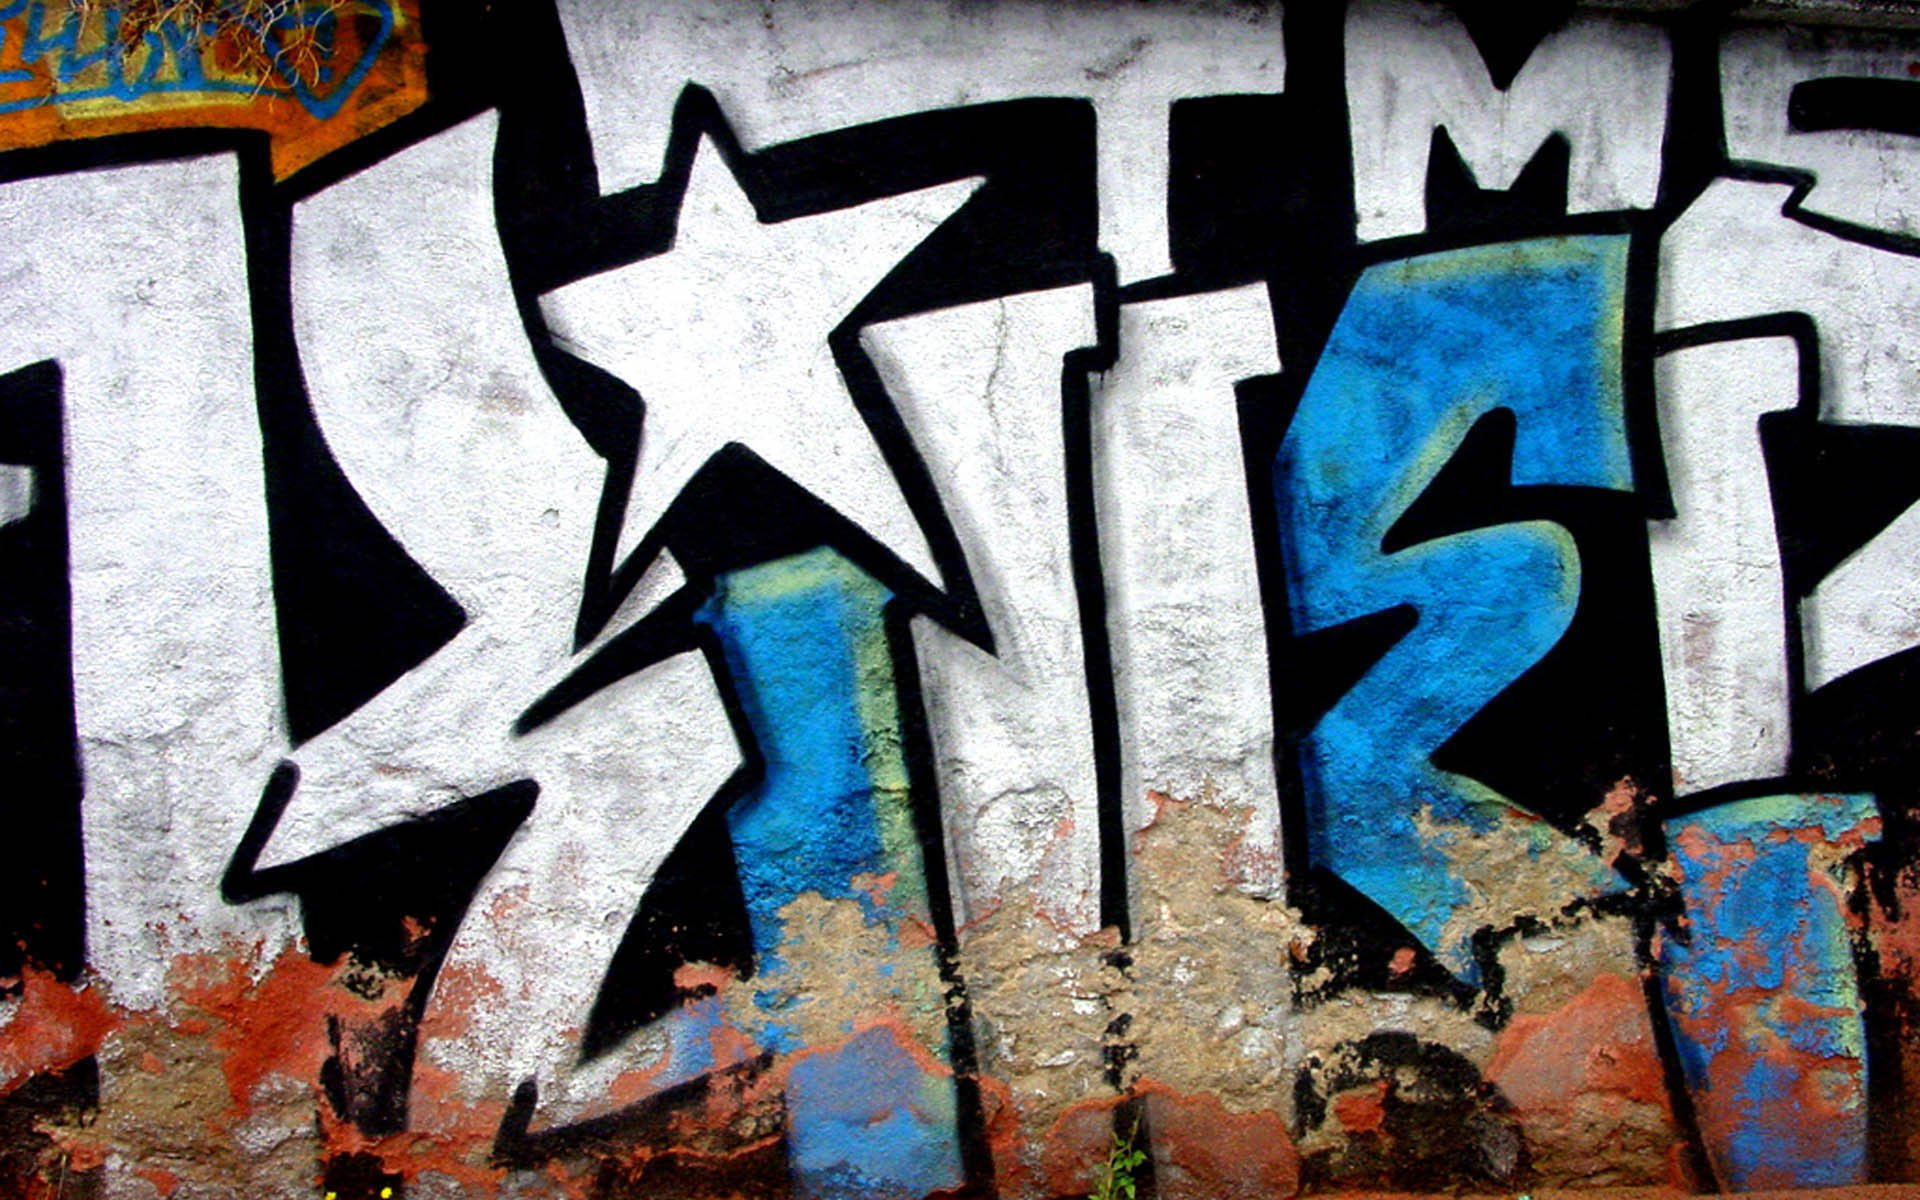 332 Graffiti Hd Wallpapers Background Images Wallpaper Abyss